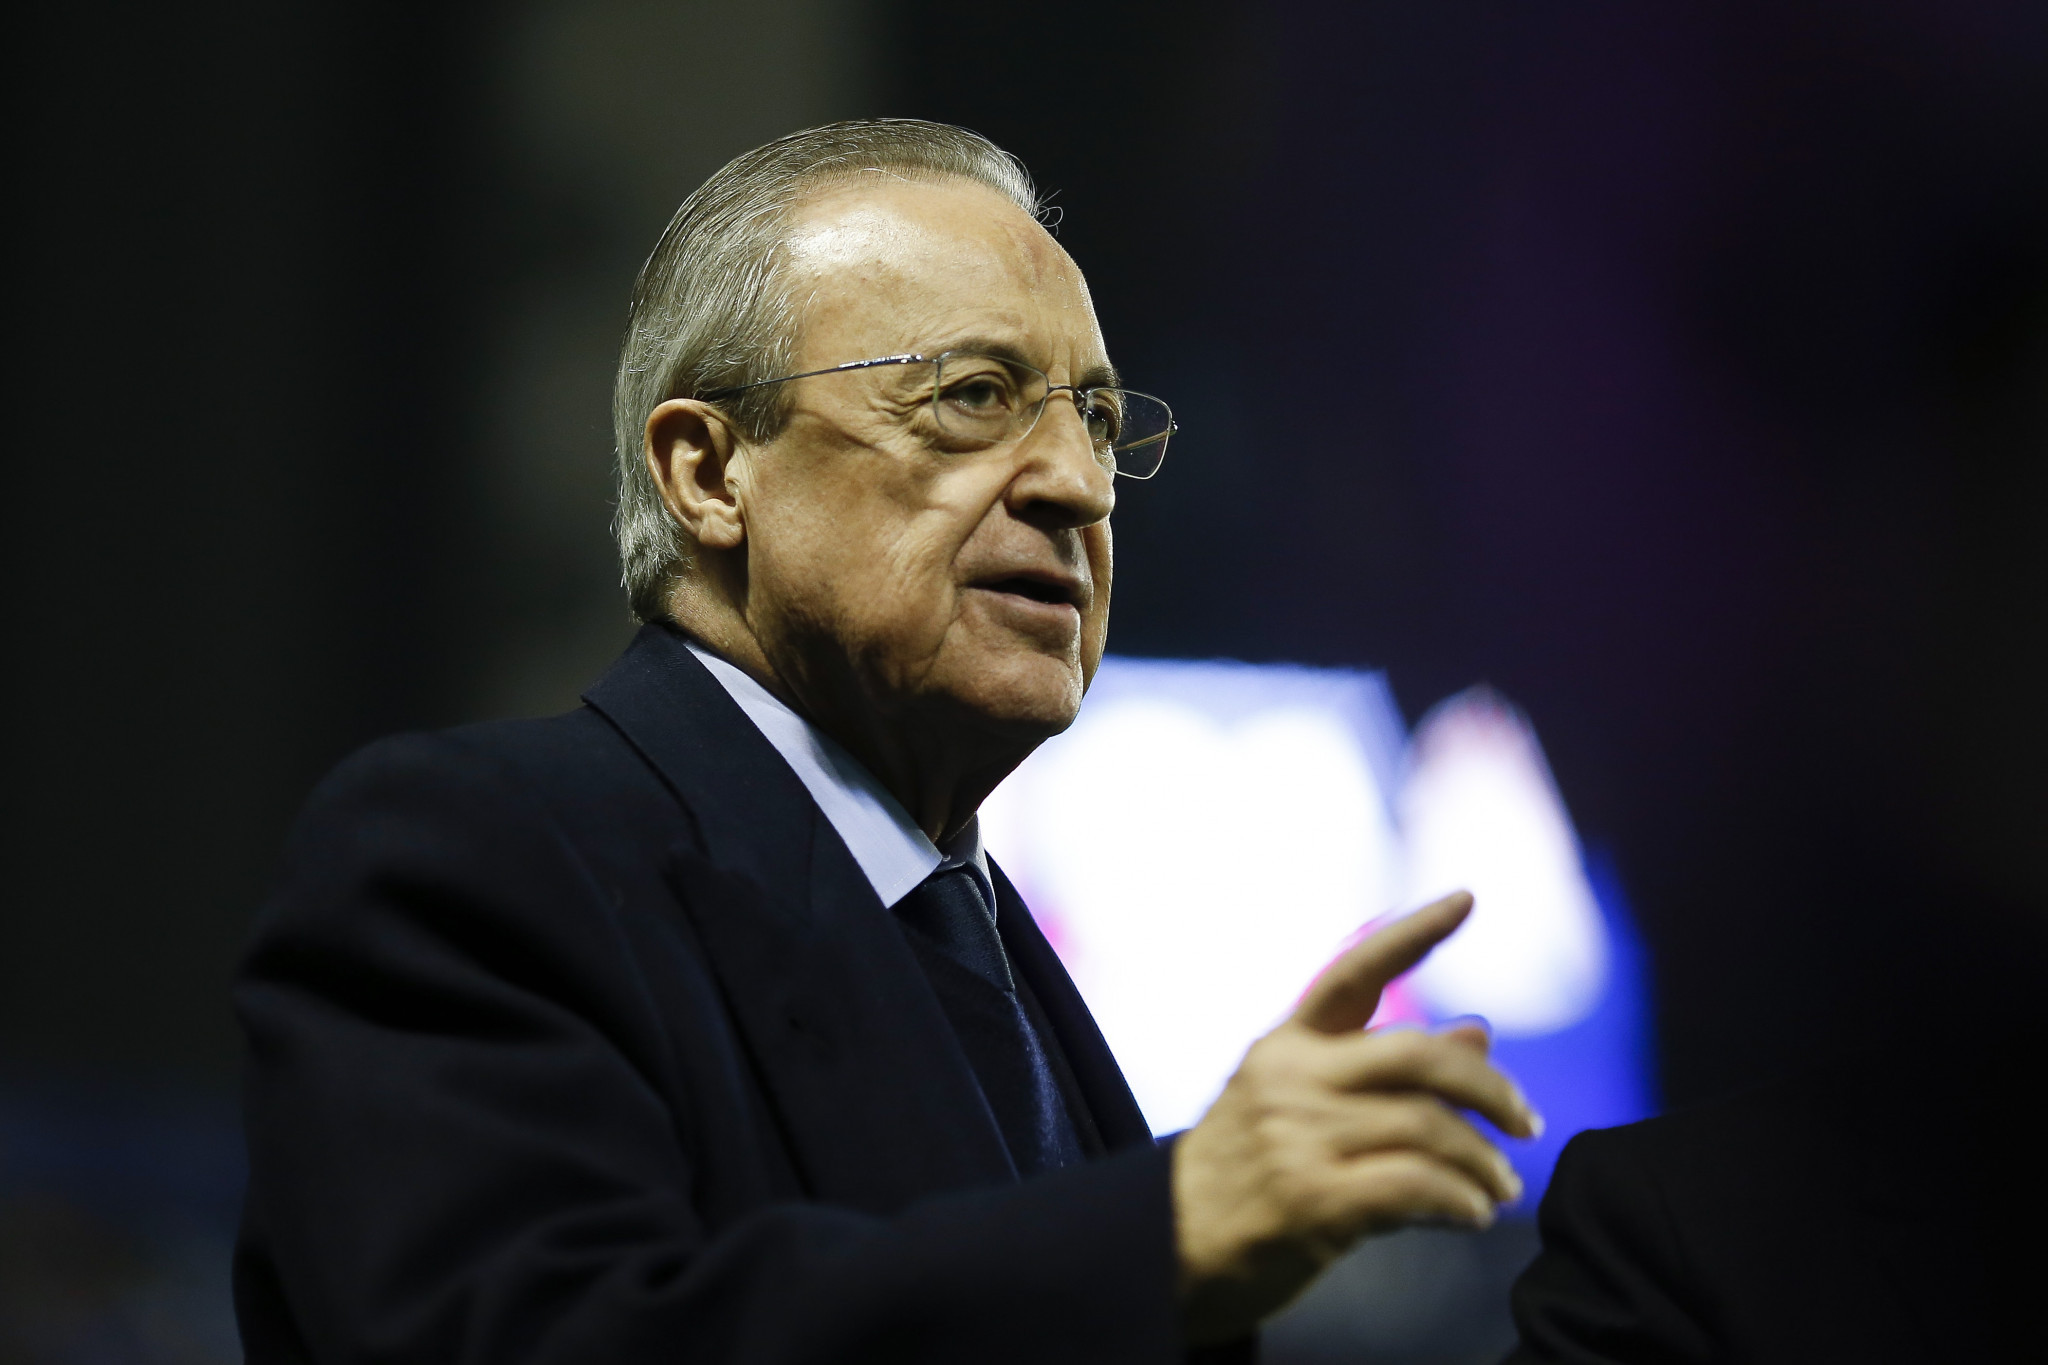 Florentino Perez questioned the oppostion to the Super League after the successful EuroLeague breakaway ©Getty Images